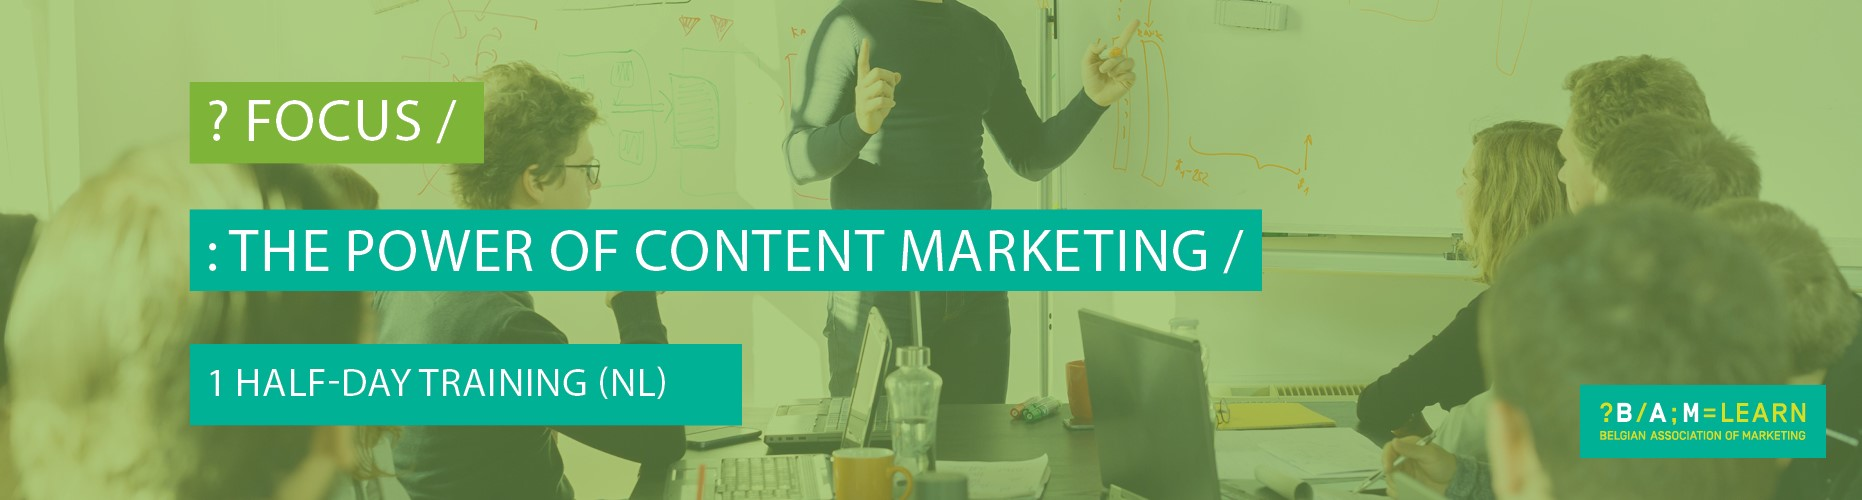 The power of content marketing 1862-500